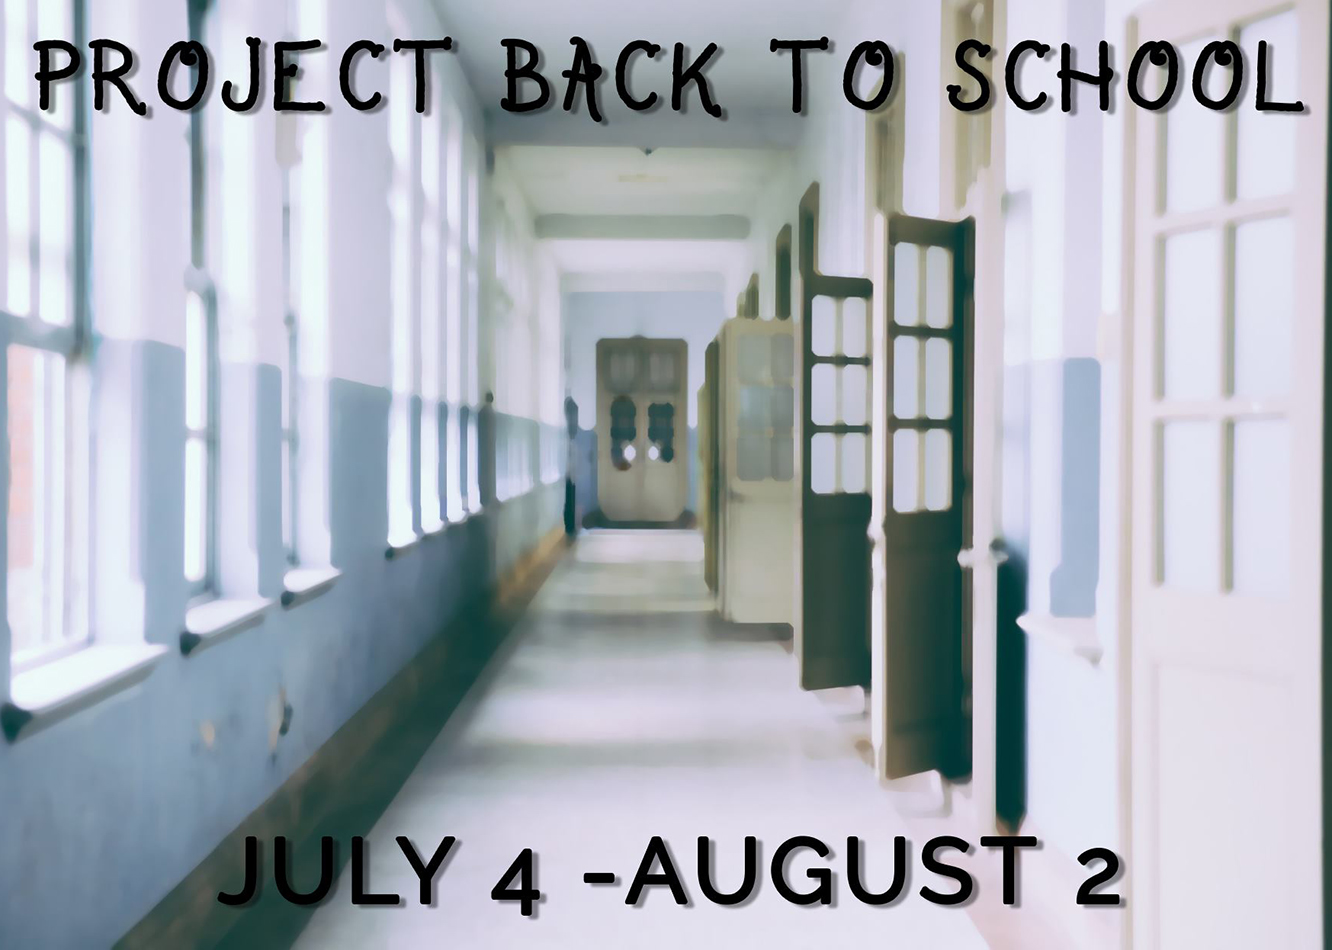 Project Back to School 2020